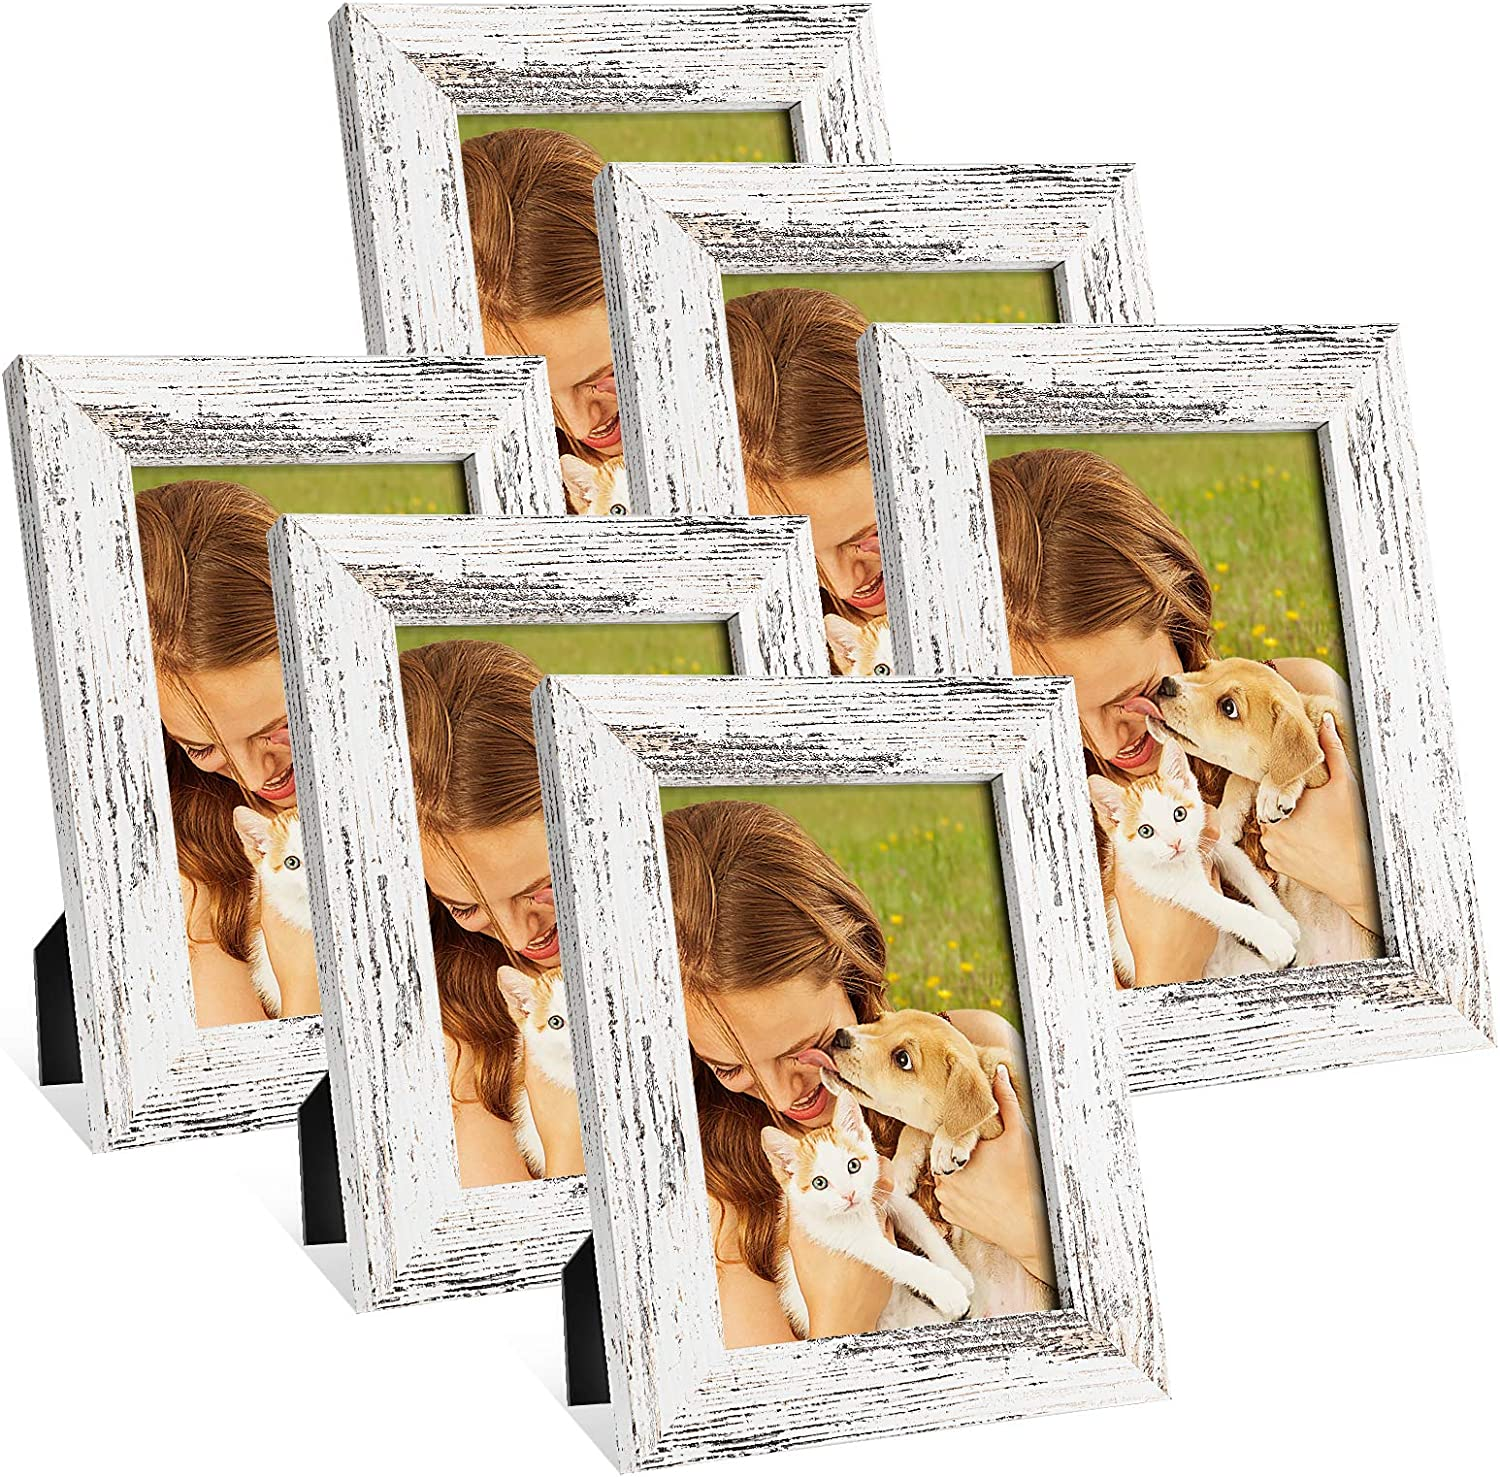 AOXOI 5x7 Picture Frames Set of 6,Wood Pattern Photo Frames for Wall or Tabletop Display,Made of High Definition Glass for 4x6 with Mat or 5x7 Without Mat,Mounting Hardware Included,Distressed White